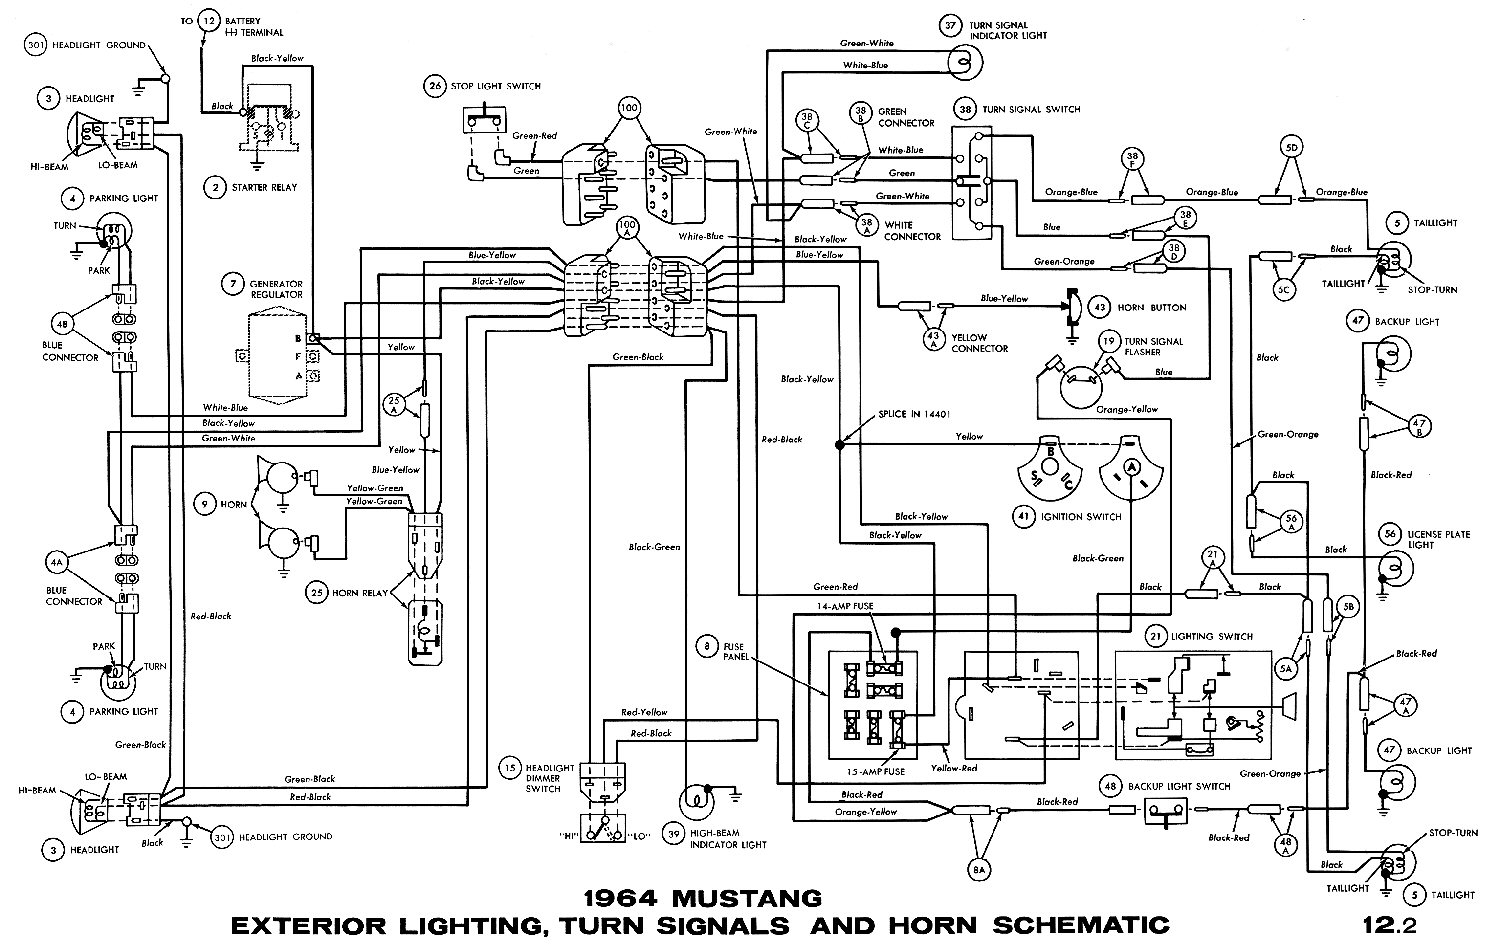 1964 Mustang Wiring Diagrams Average Joe Restoration A Light Switch And Schematic Together Headlamps